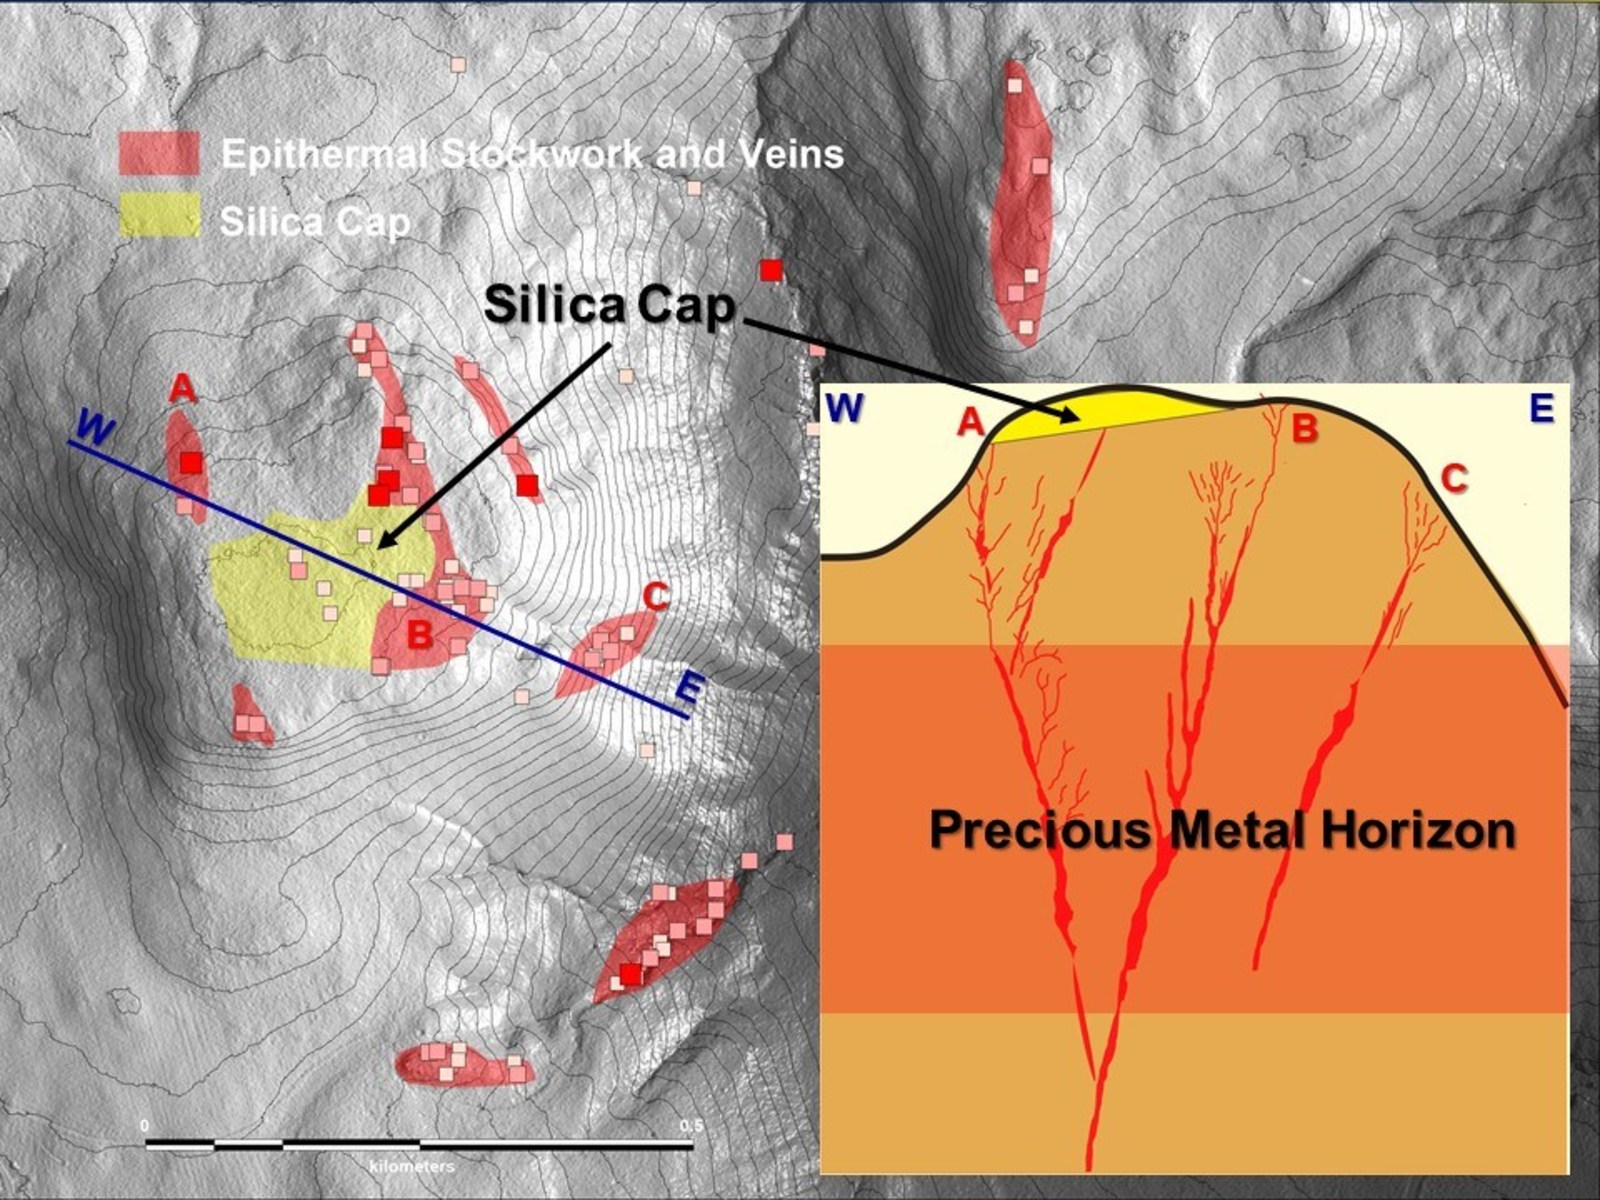 Map of the discovery area of the Highway Zone at Shot Rock showing relative position of the newly identified Silica Cap to zones of quartz veining. Inset: Model cross- section of the discovery area.